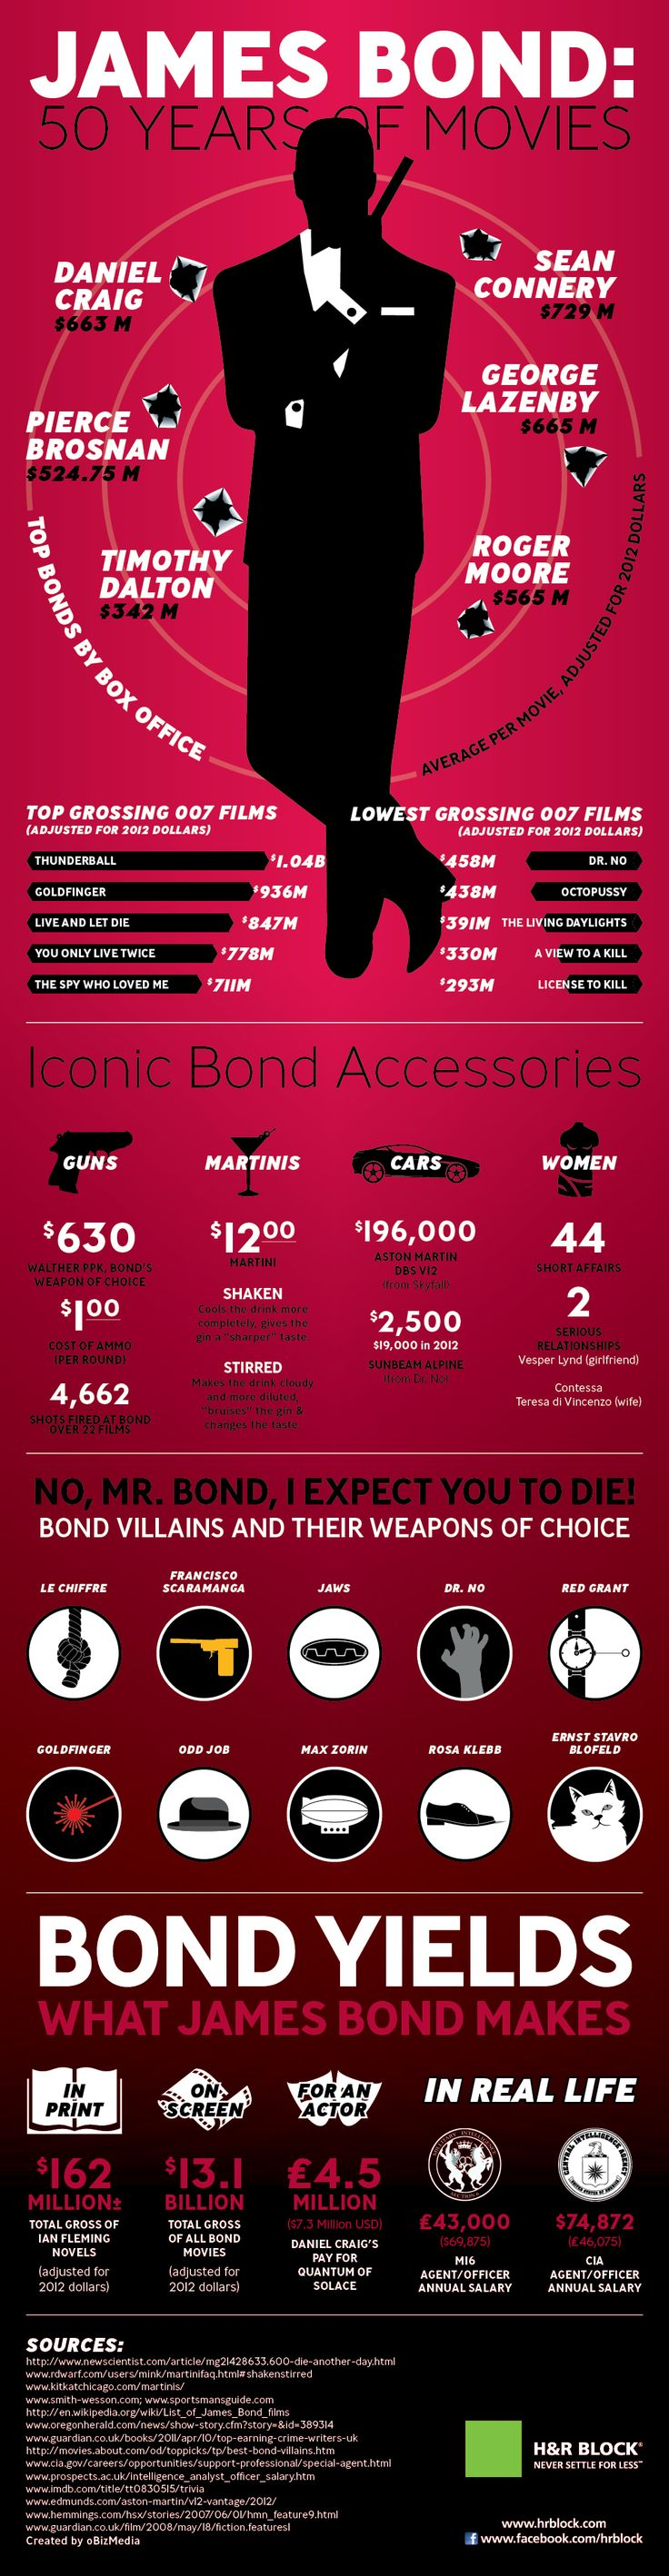 Get in that Aston Martin and get up to speed on Bond. James Bond: 50 Years of Movies infographic